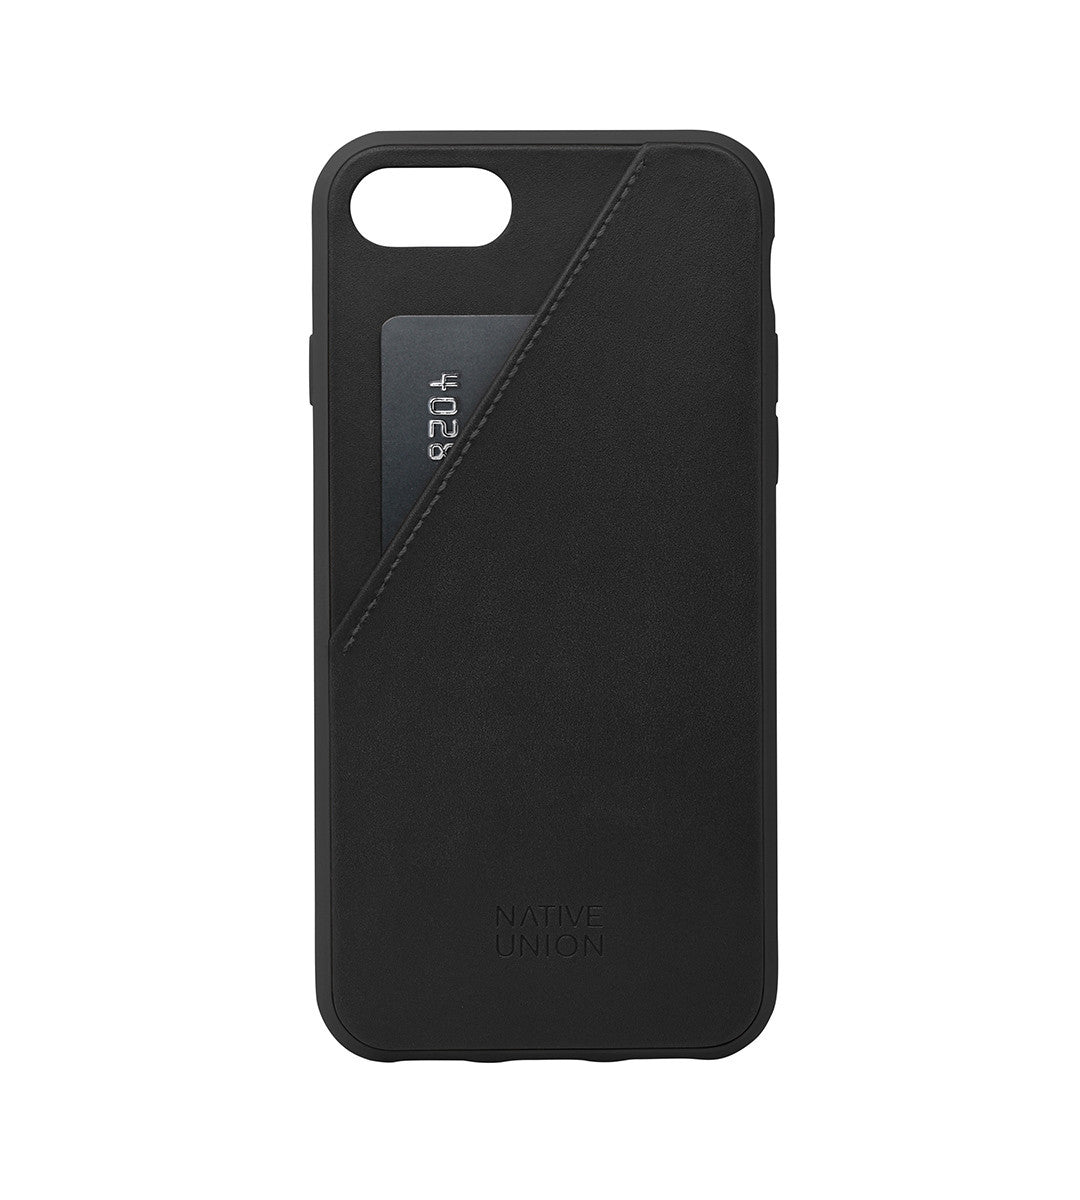 Native Union Clic Card Leather Phone Case